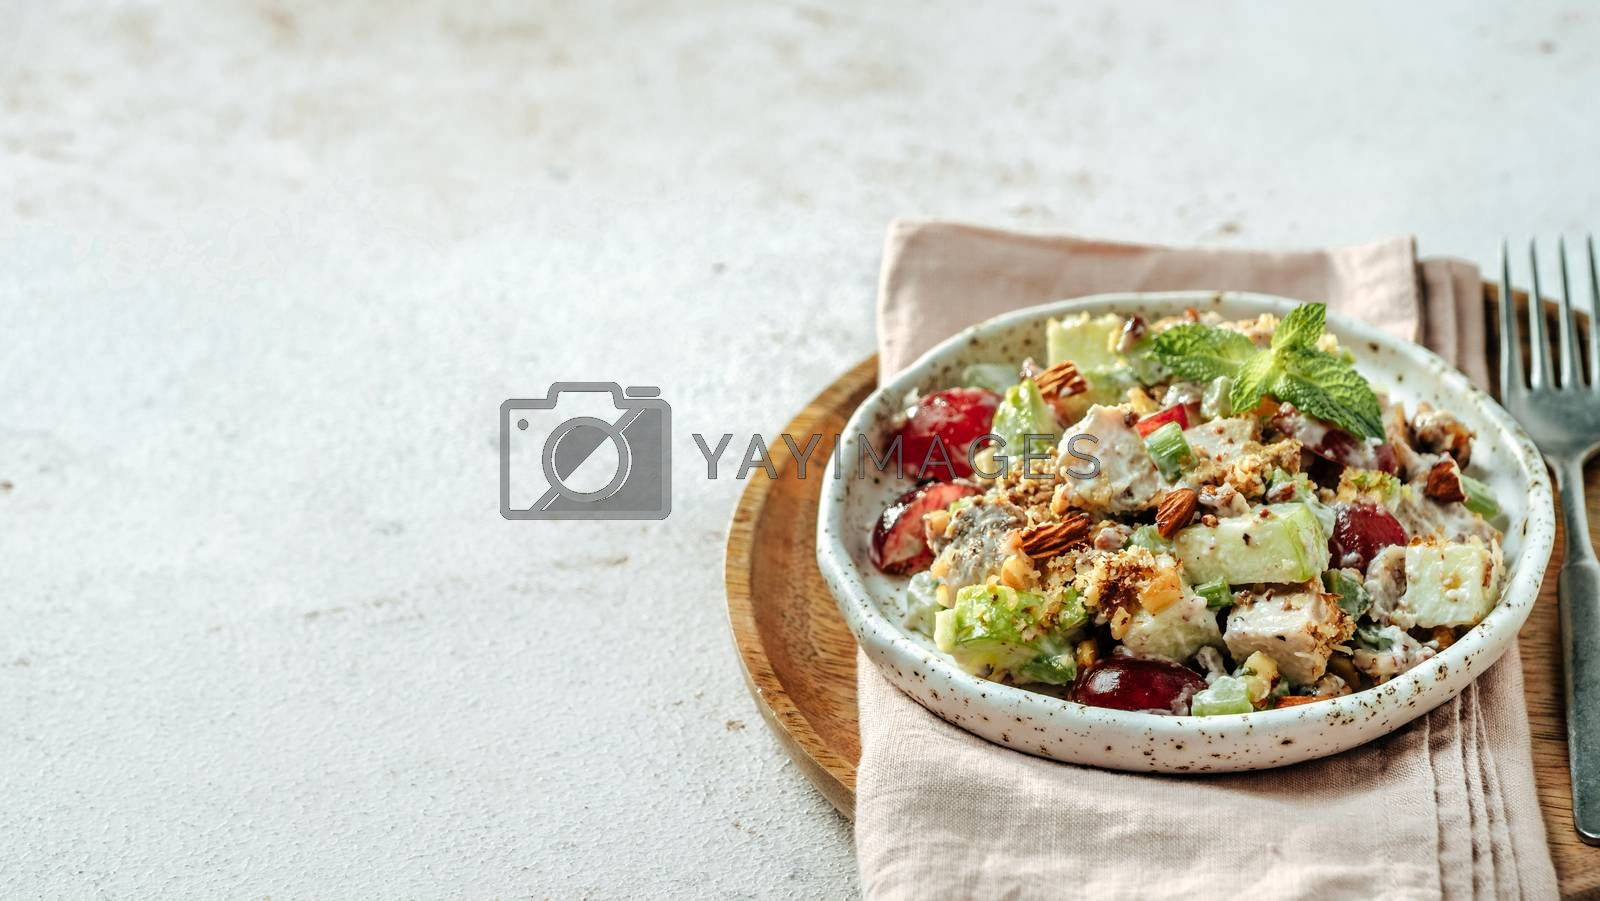 Waldorf salad with copy space. American fruit and nut salad with apples, celery, grapes, chicken meat, dressed mayonnaise. Craft plate with ready-to-eat waldorf salad on gray cement background. Banner